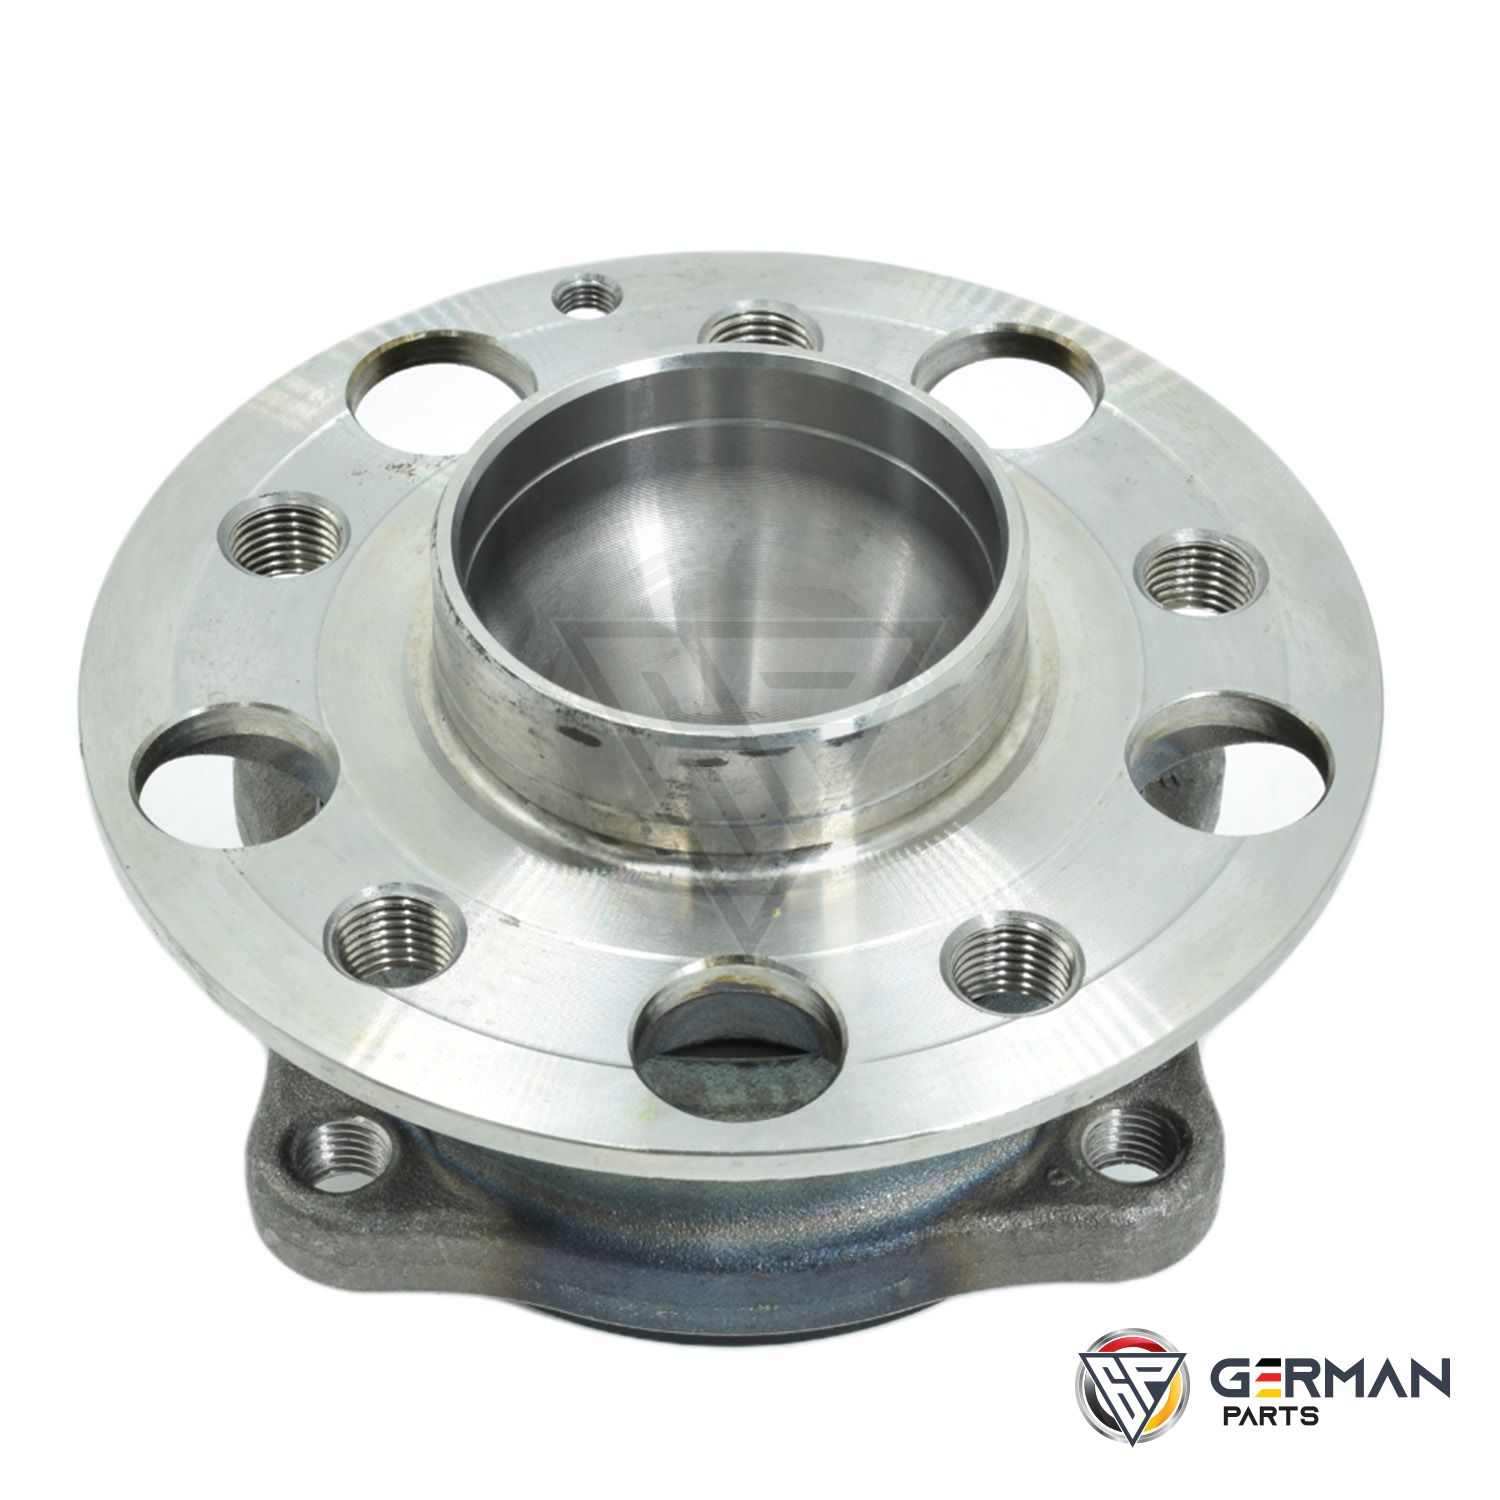 Buy Genuine Mercedes Benz Front Wheel Bearing 2223340000 - German Parts